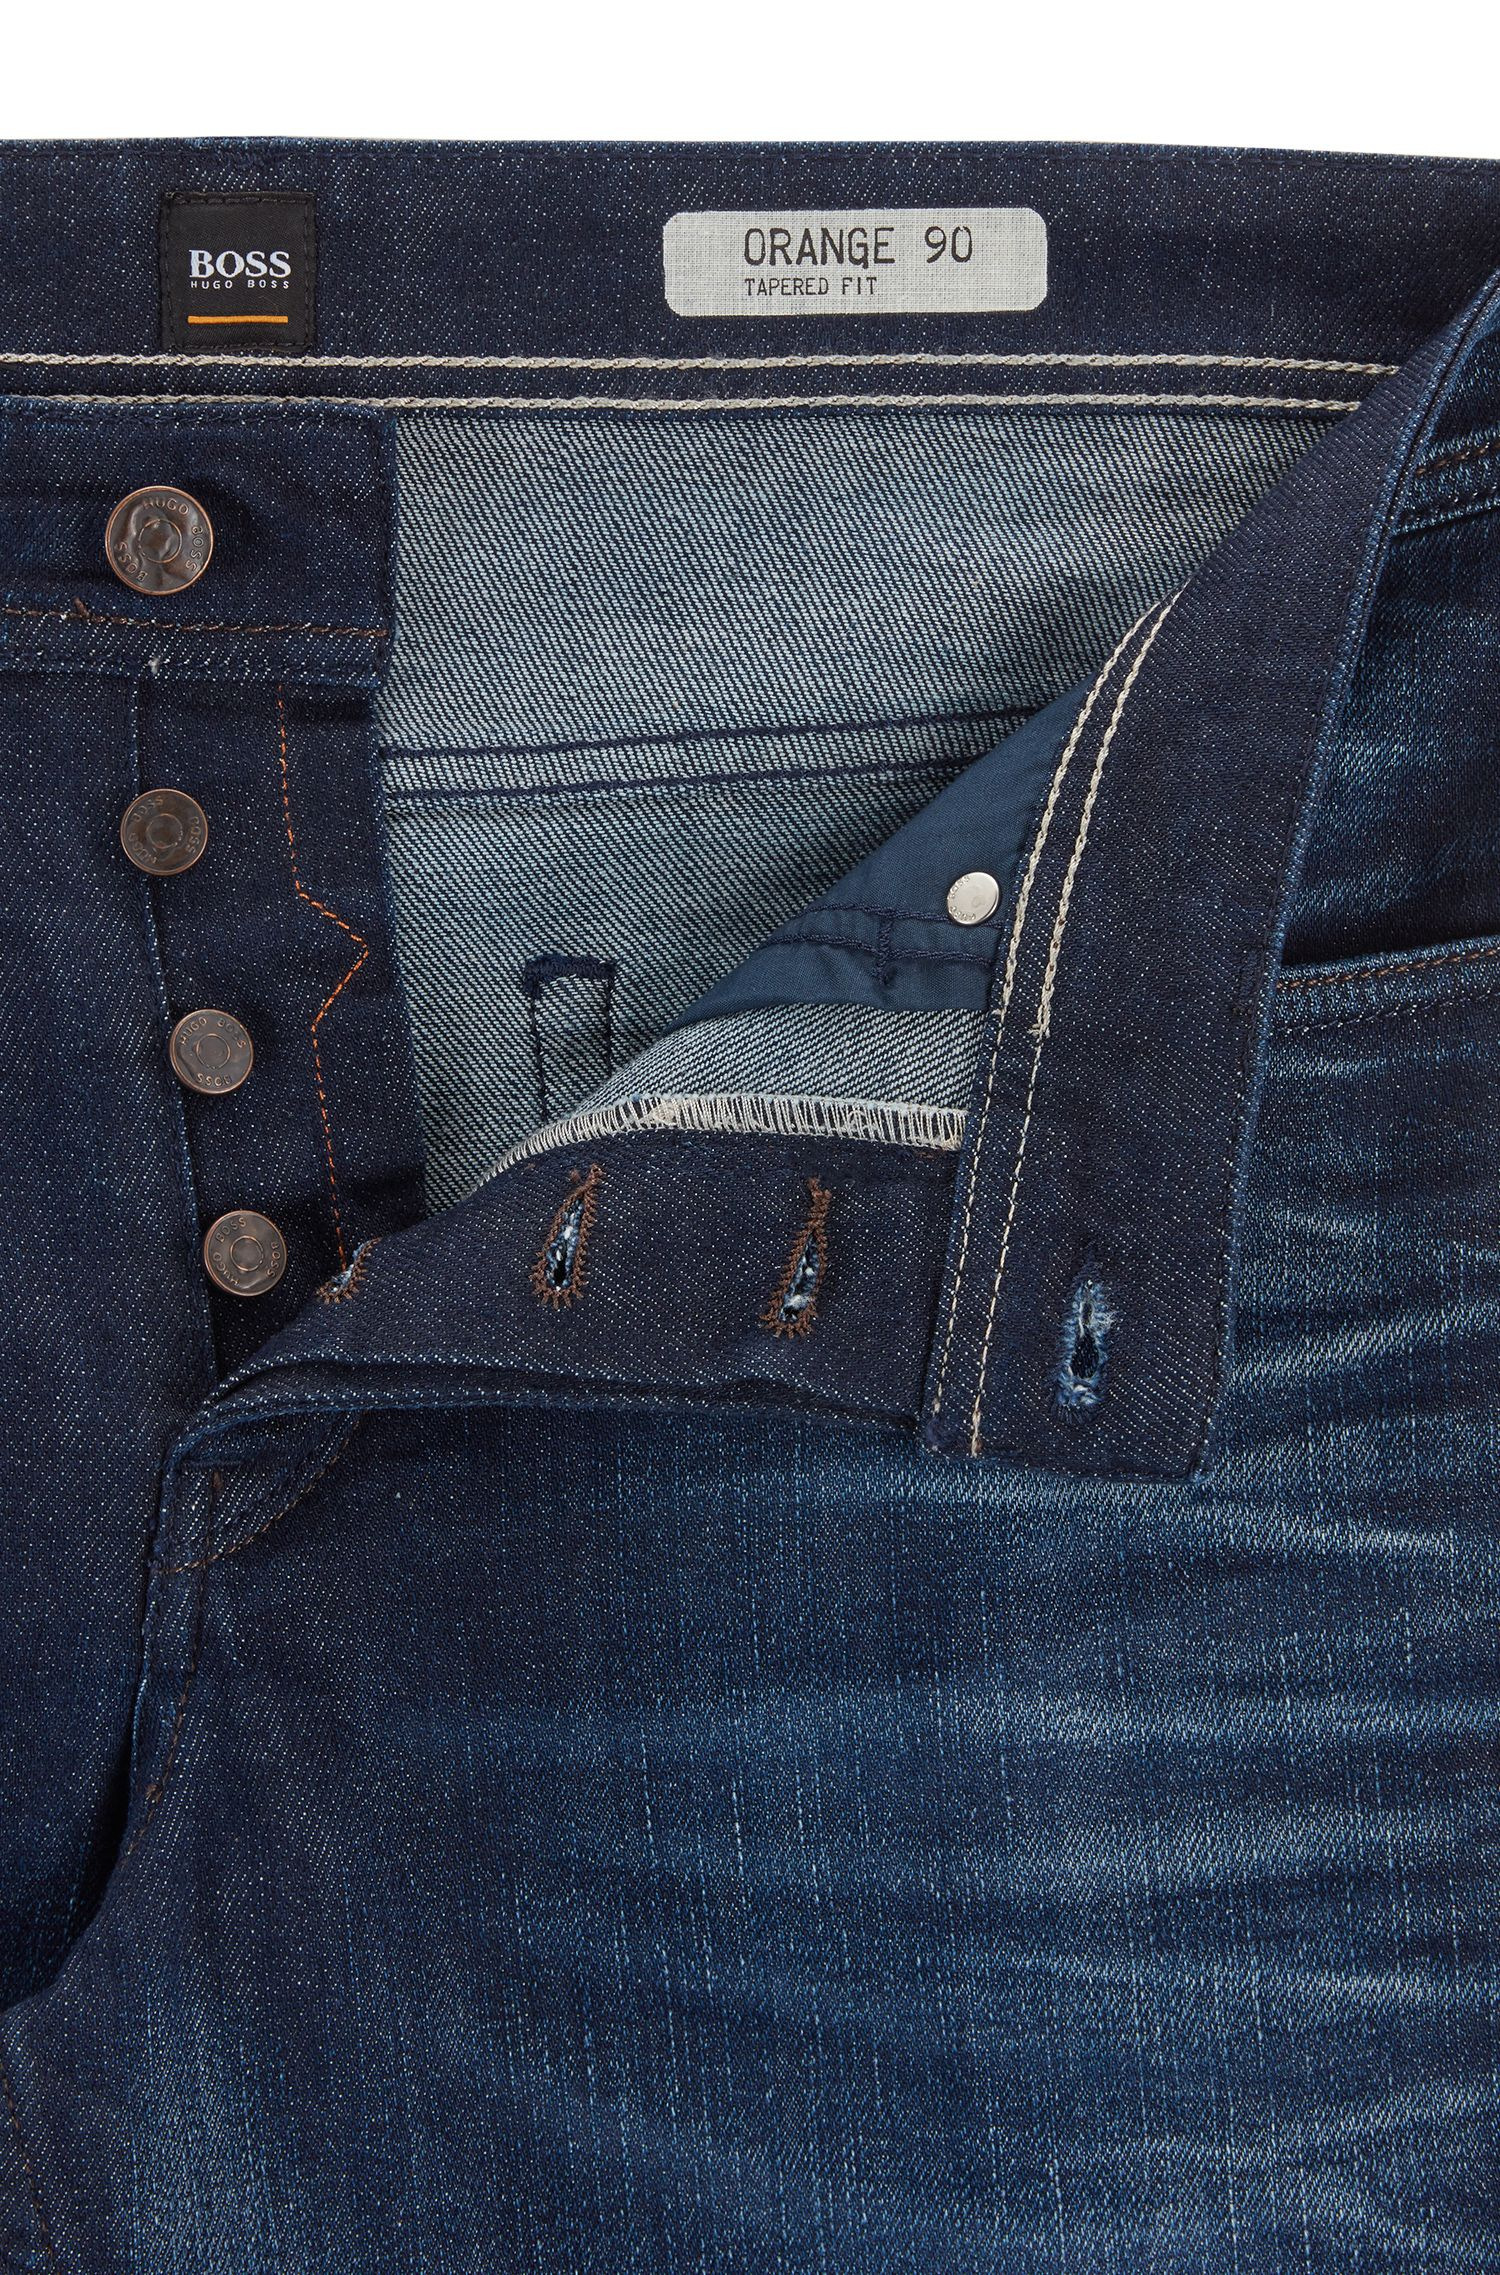 Vaqueros tapered fit en denim elástico para mayor confort